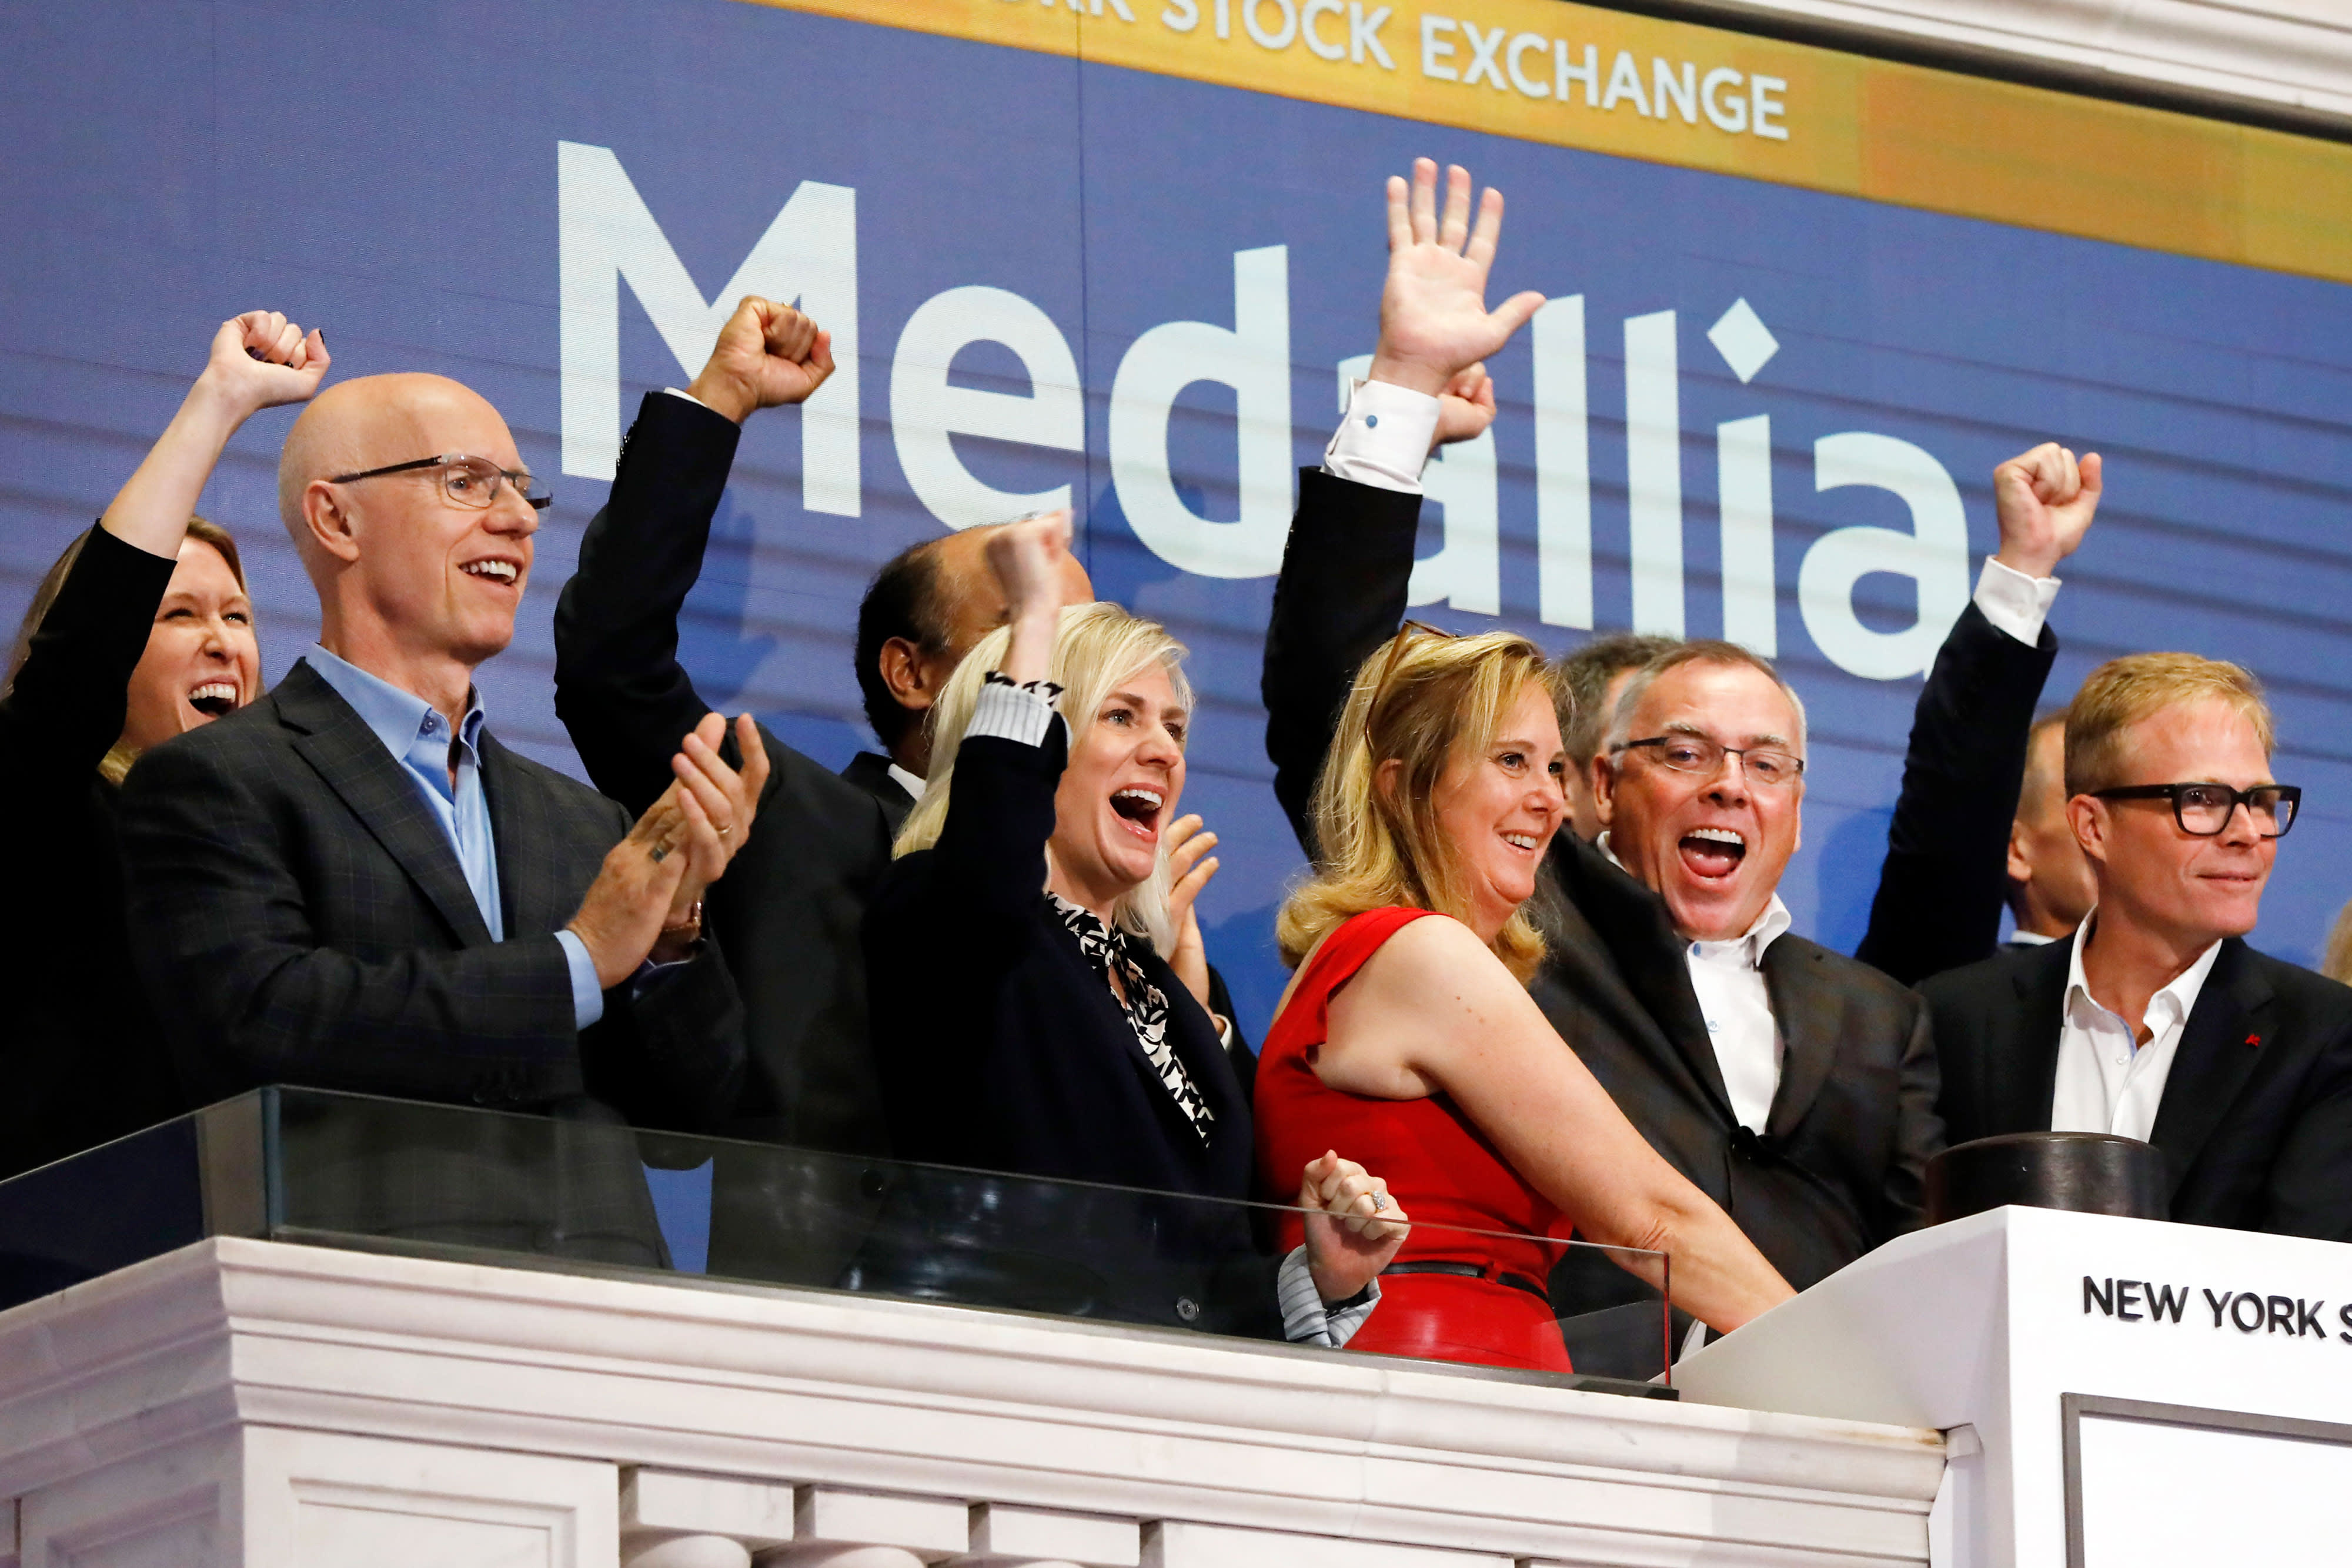 Medallia soars more than 75% in IPO